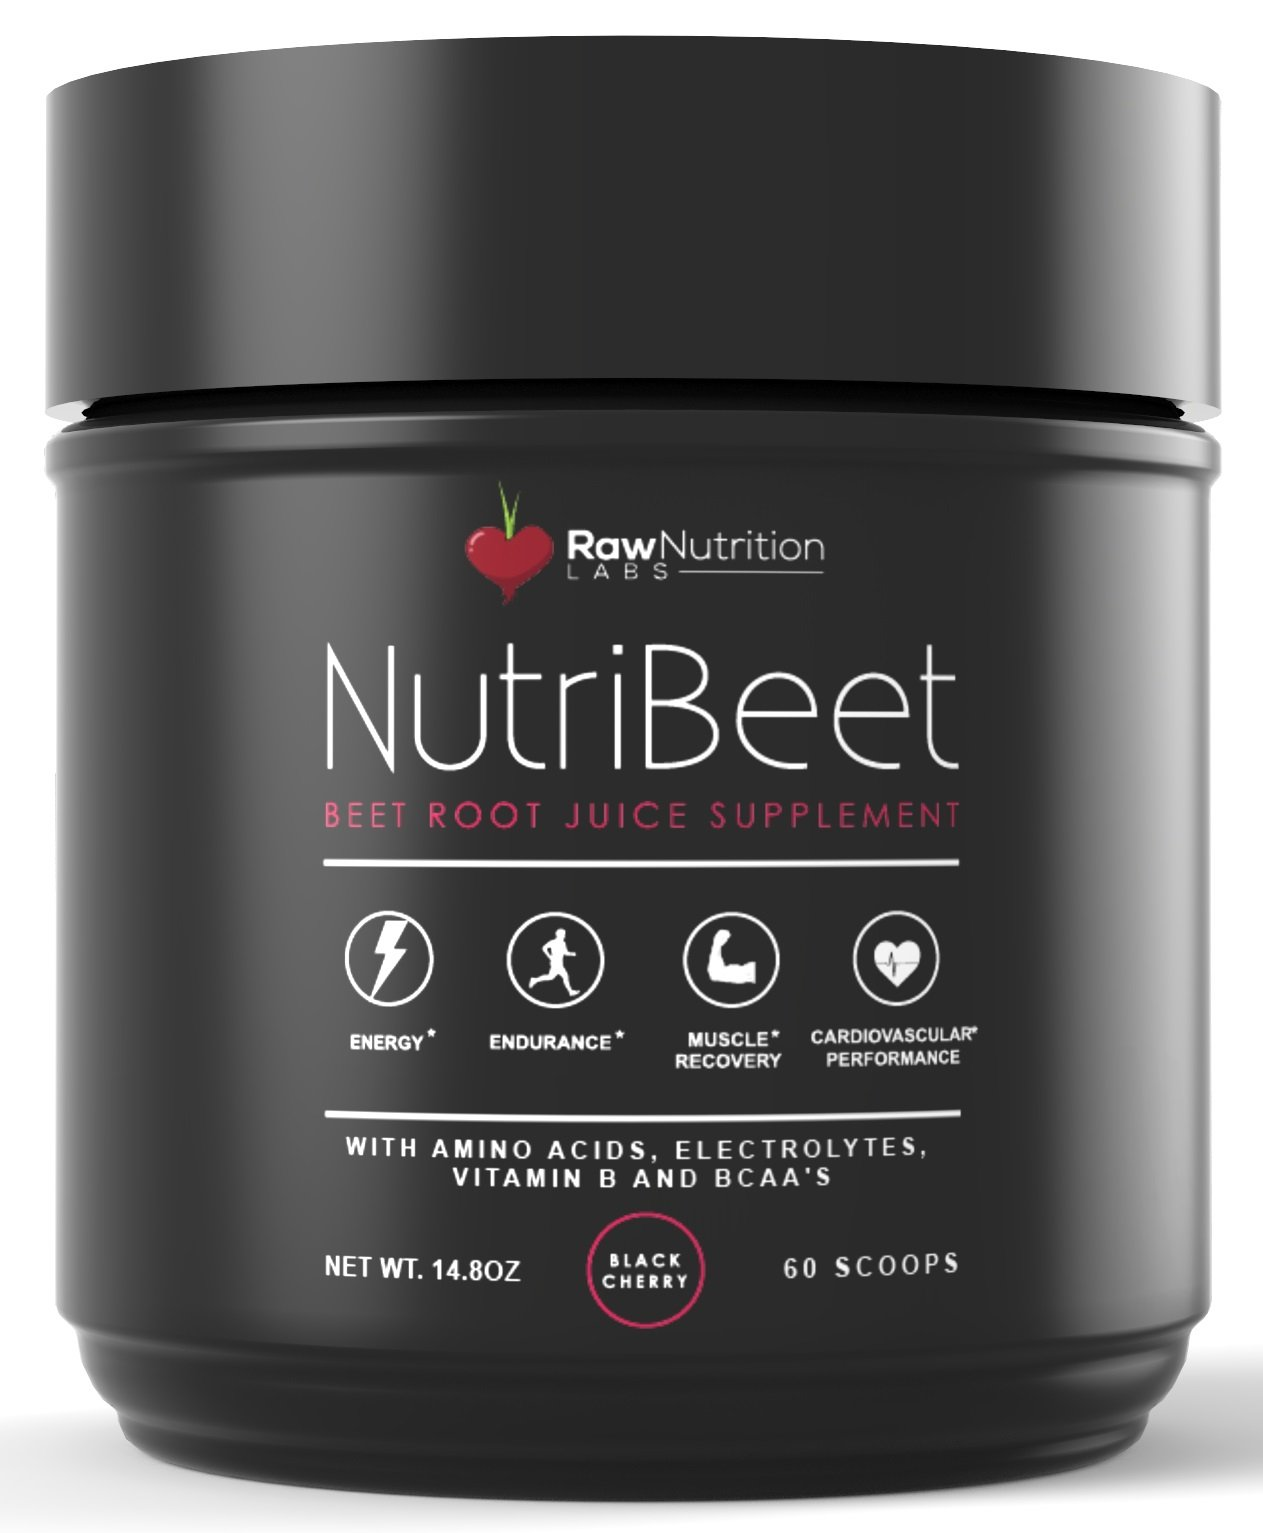 Raw Nutrition Labs NutriBeet Nitric Oxide Optimizer Organic Beet Root Juice Powder with Amino Nitrate Matrix, Electrolytes, Vitamin B Energy Boost & BCAA Recovery Support (60 scoops), 14.8 oz by Raw Nutrition Labs